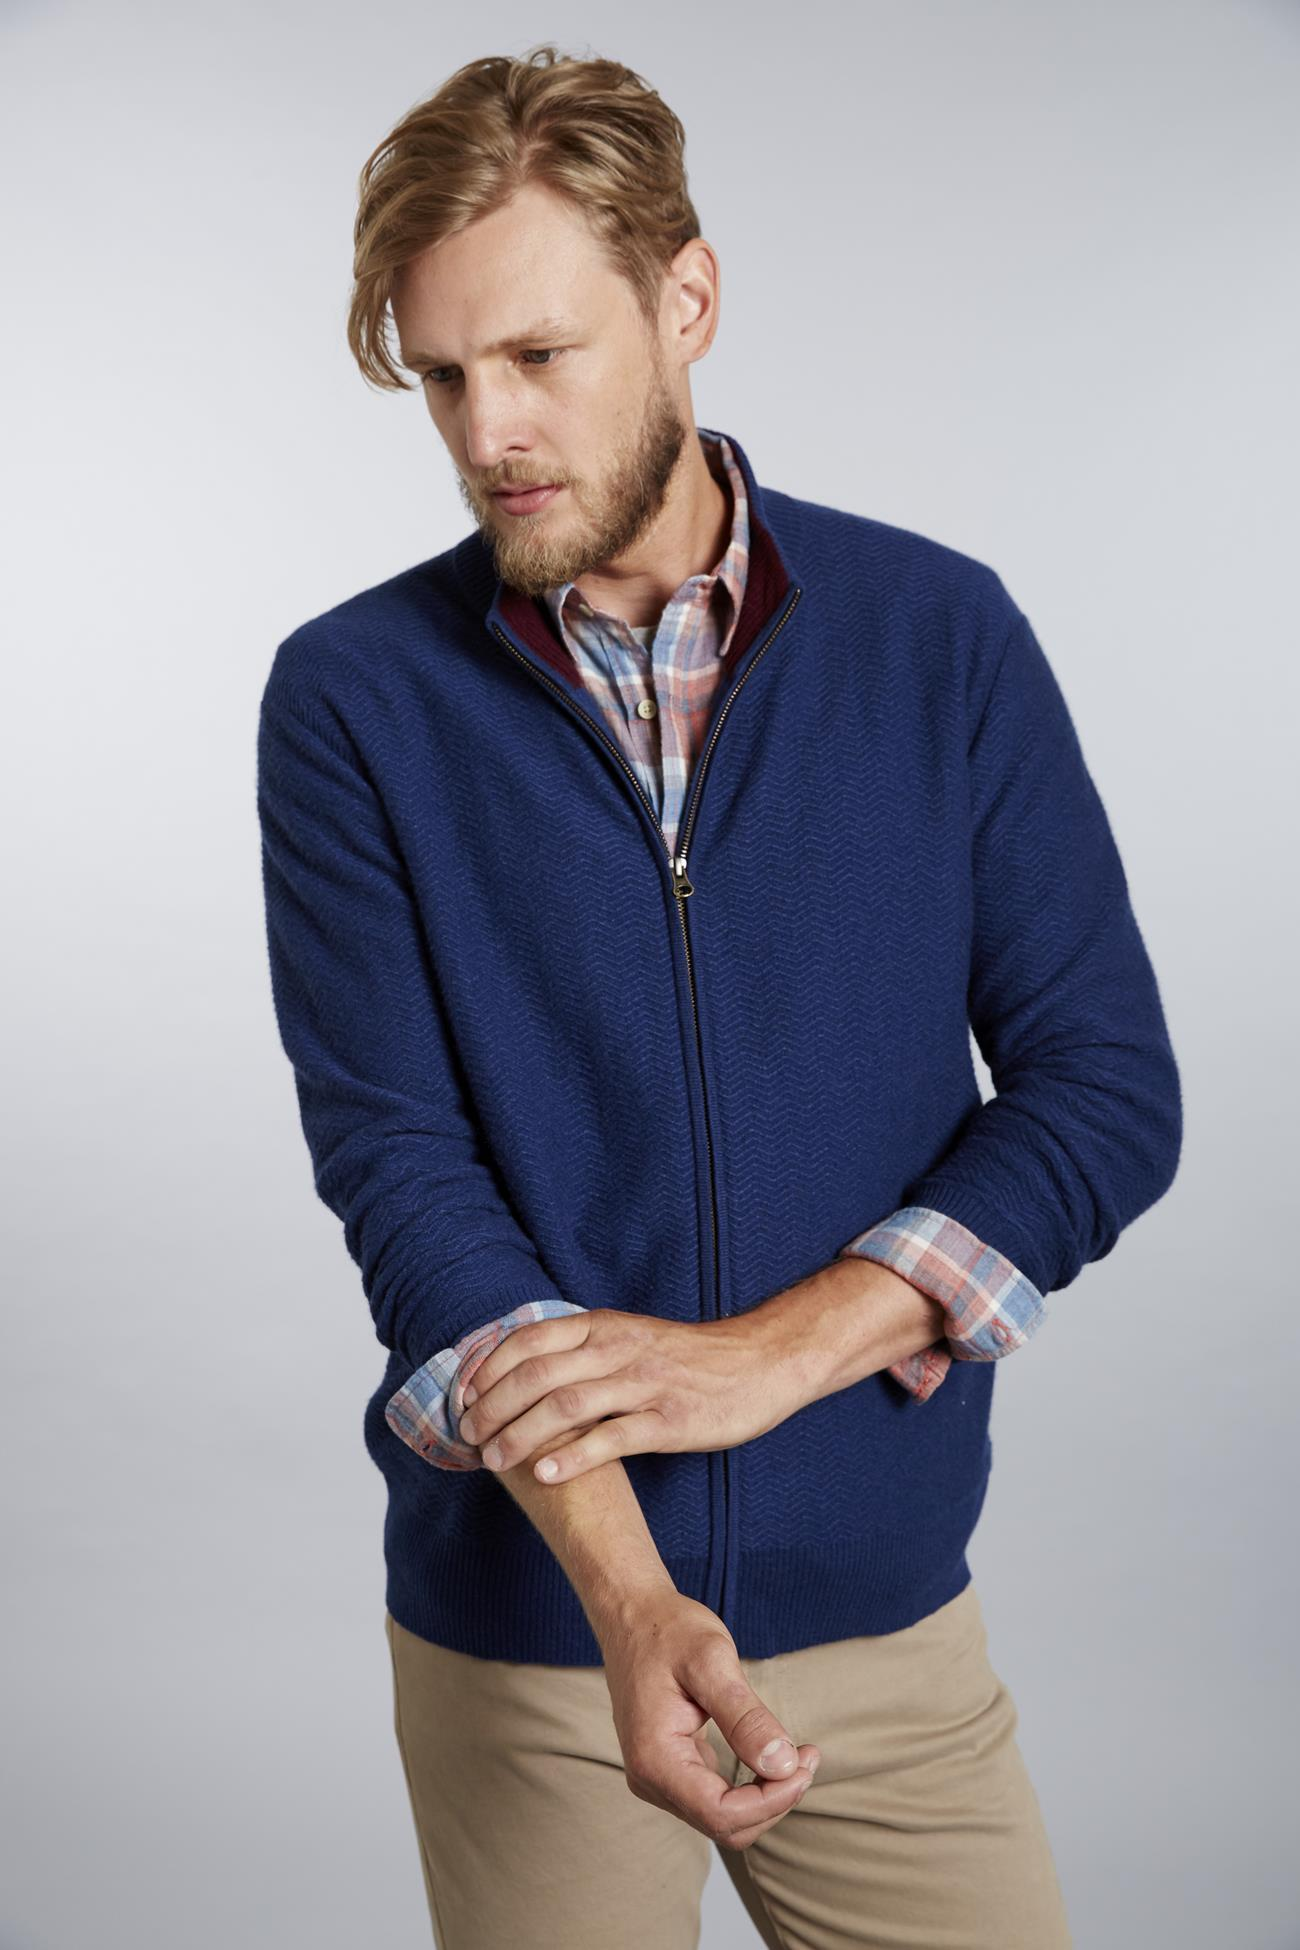 Herringbone Texture Men's Cashmere Cardigan Sweater